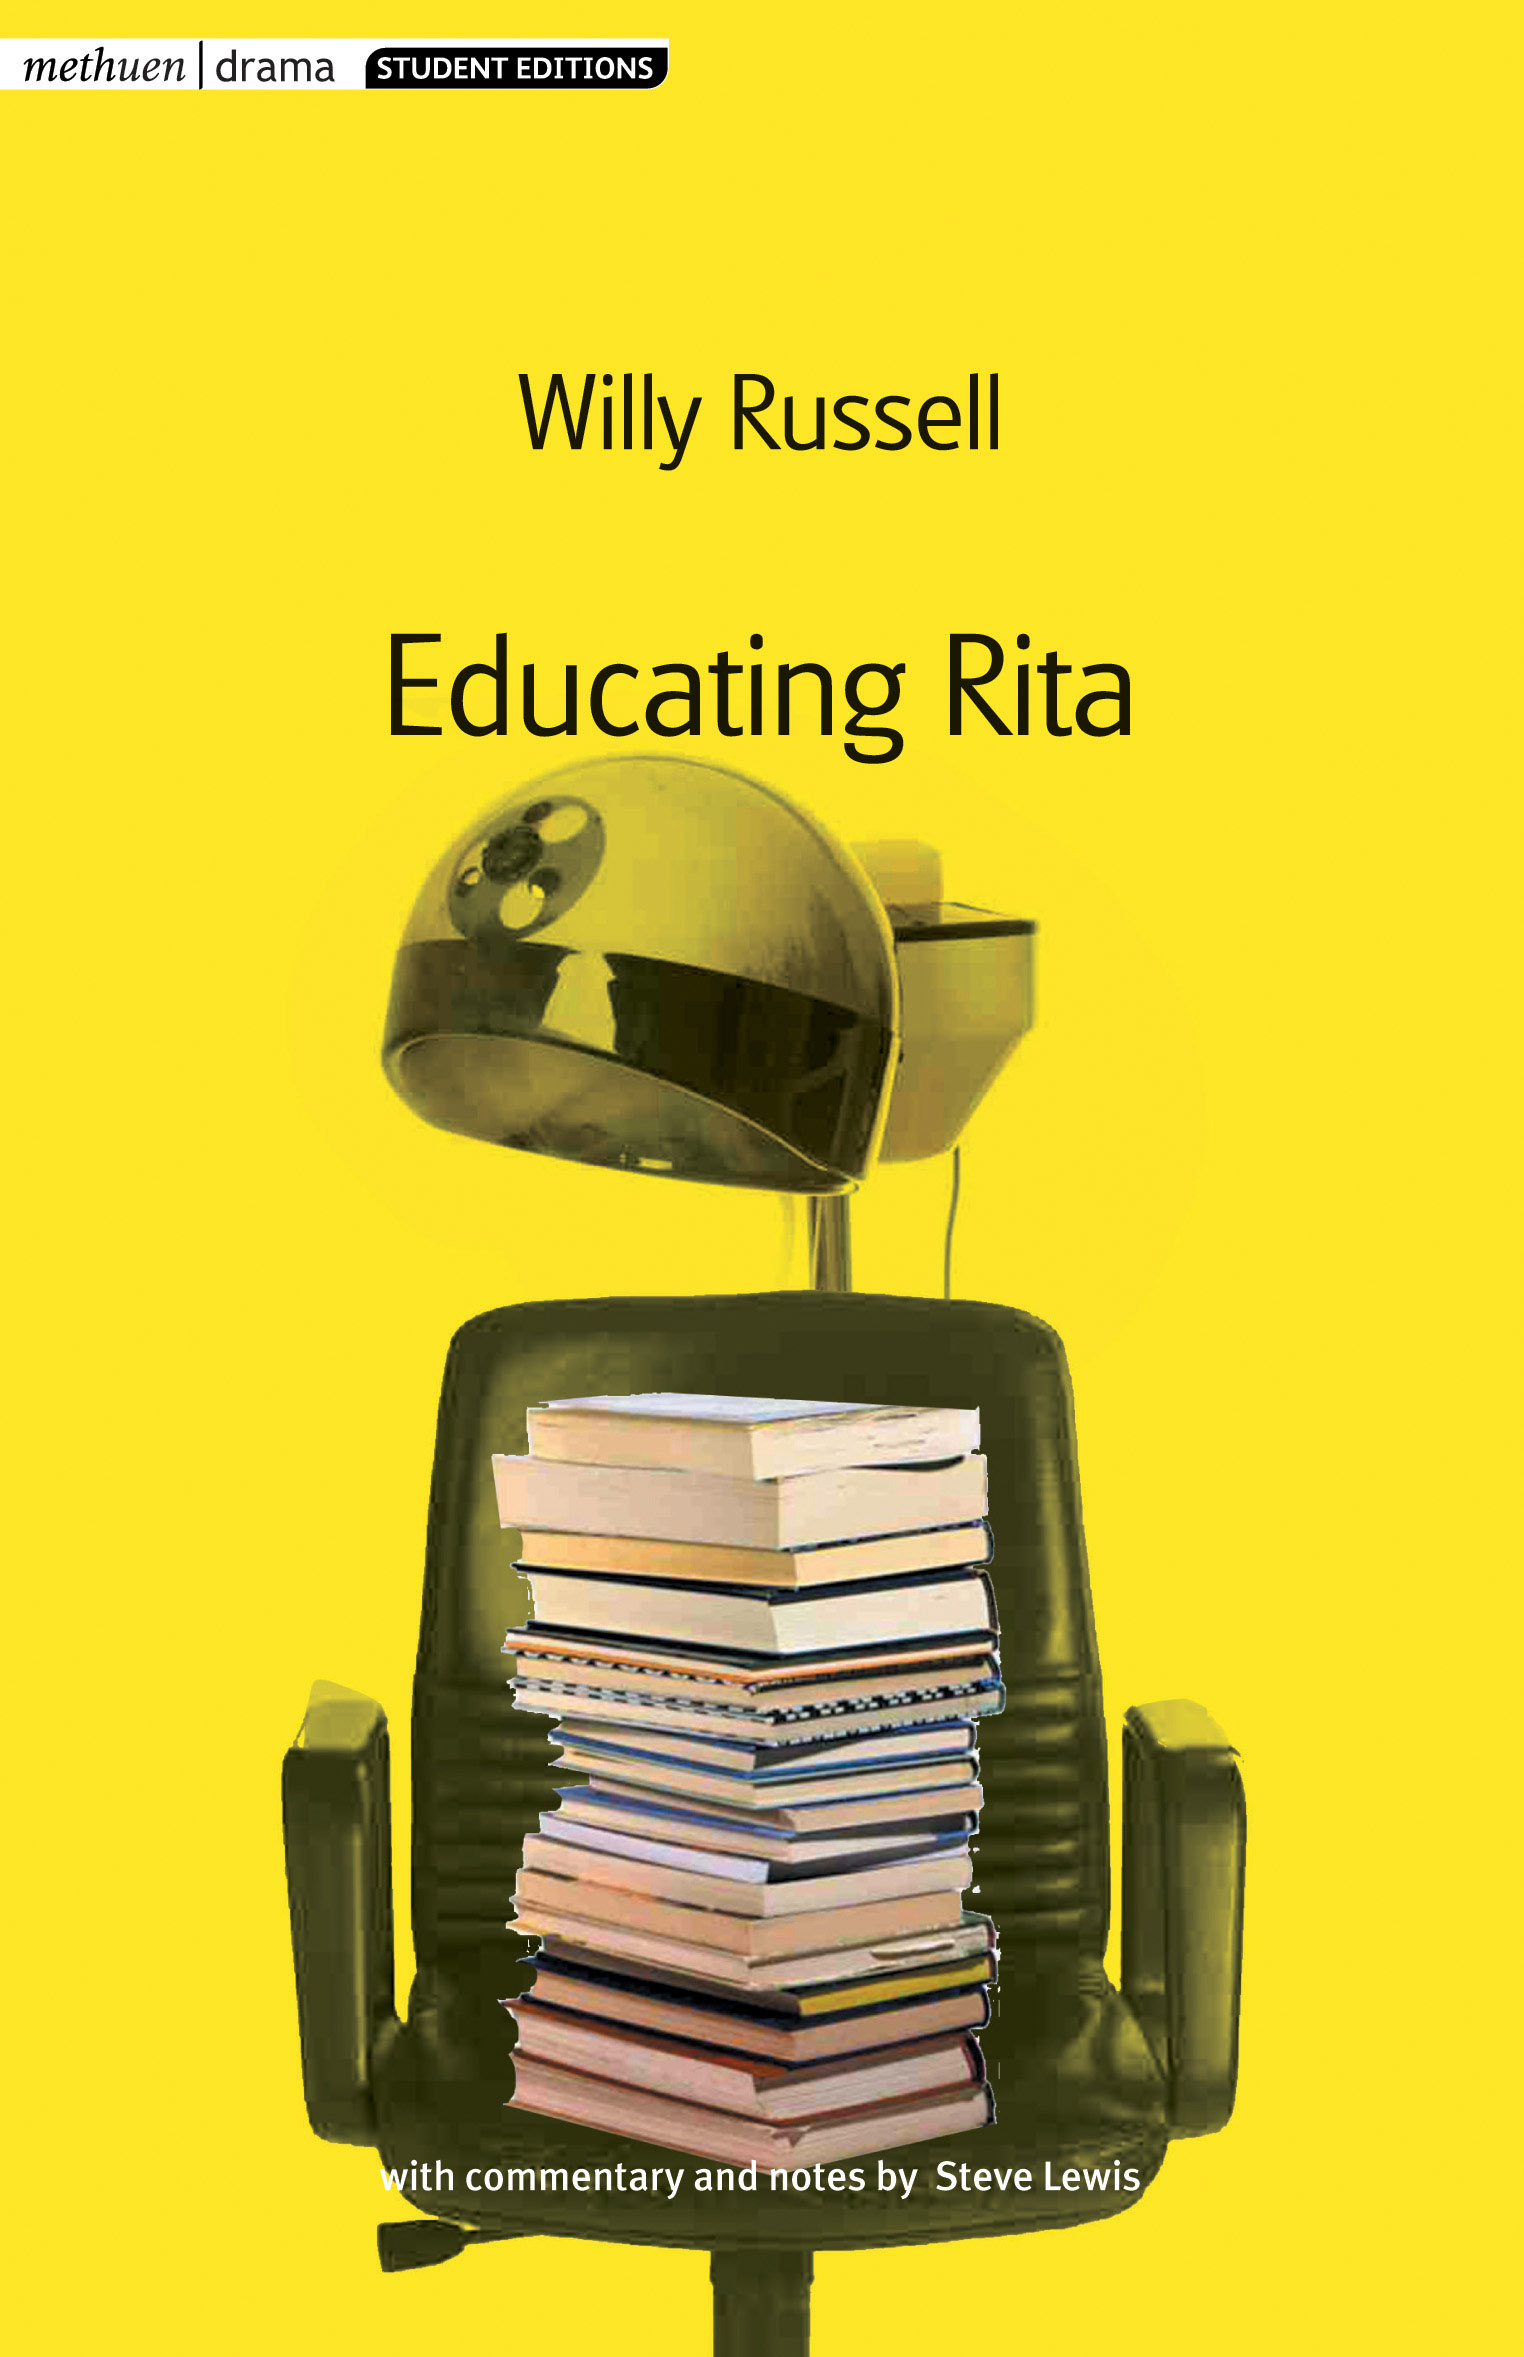 an analysis of the play educating rita by willy russell Educating rita is a small intimate play, but it tells a story of big ideas, ideas close to willy russell's heart there is a lot of humour in the writing, but it is also a serious play, about class and choice.